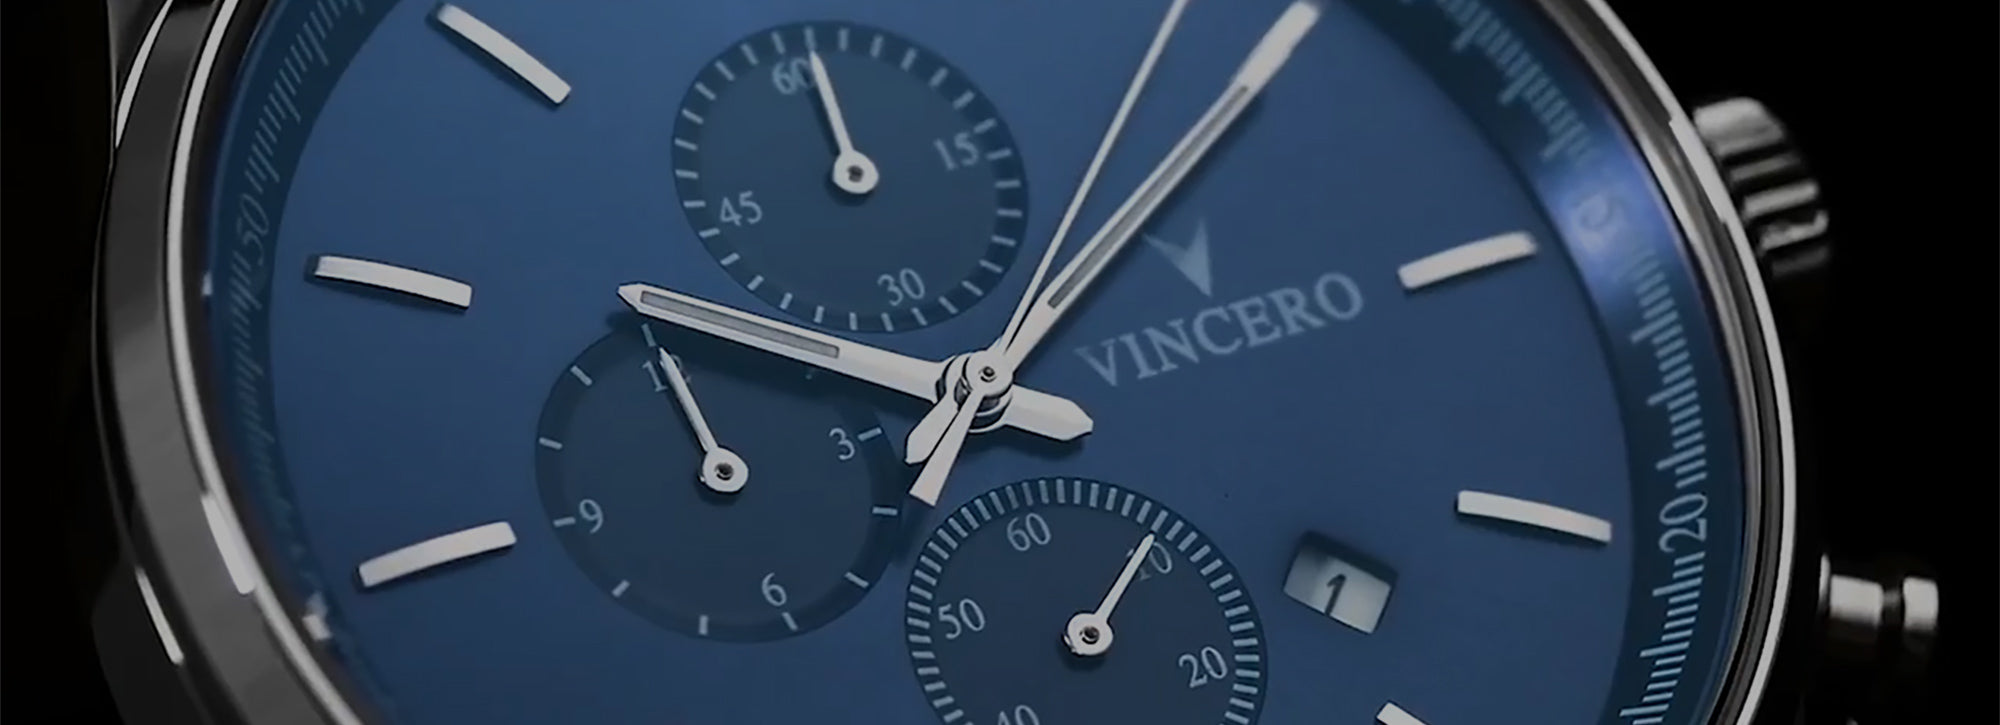 d0e2b868f About – Vincero Watches